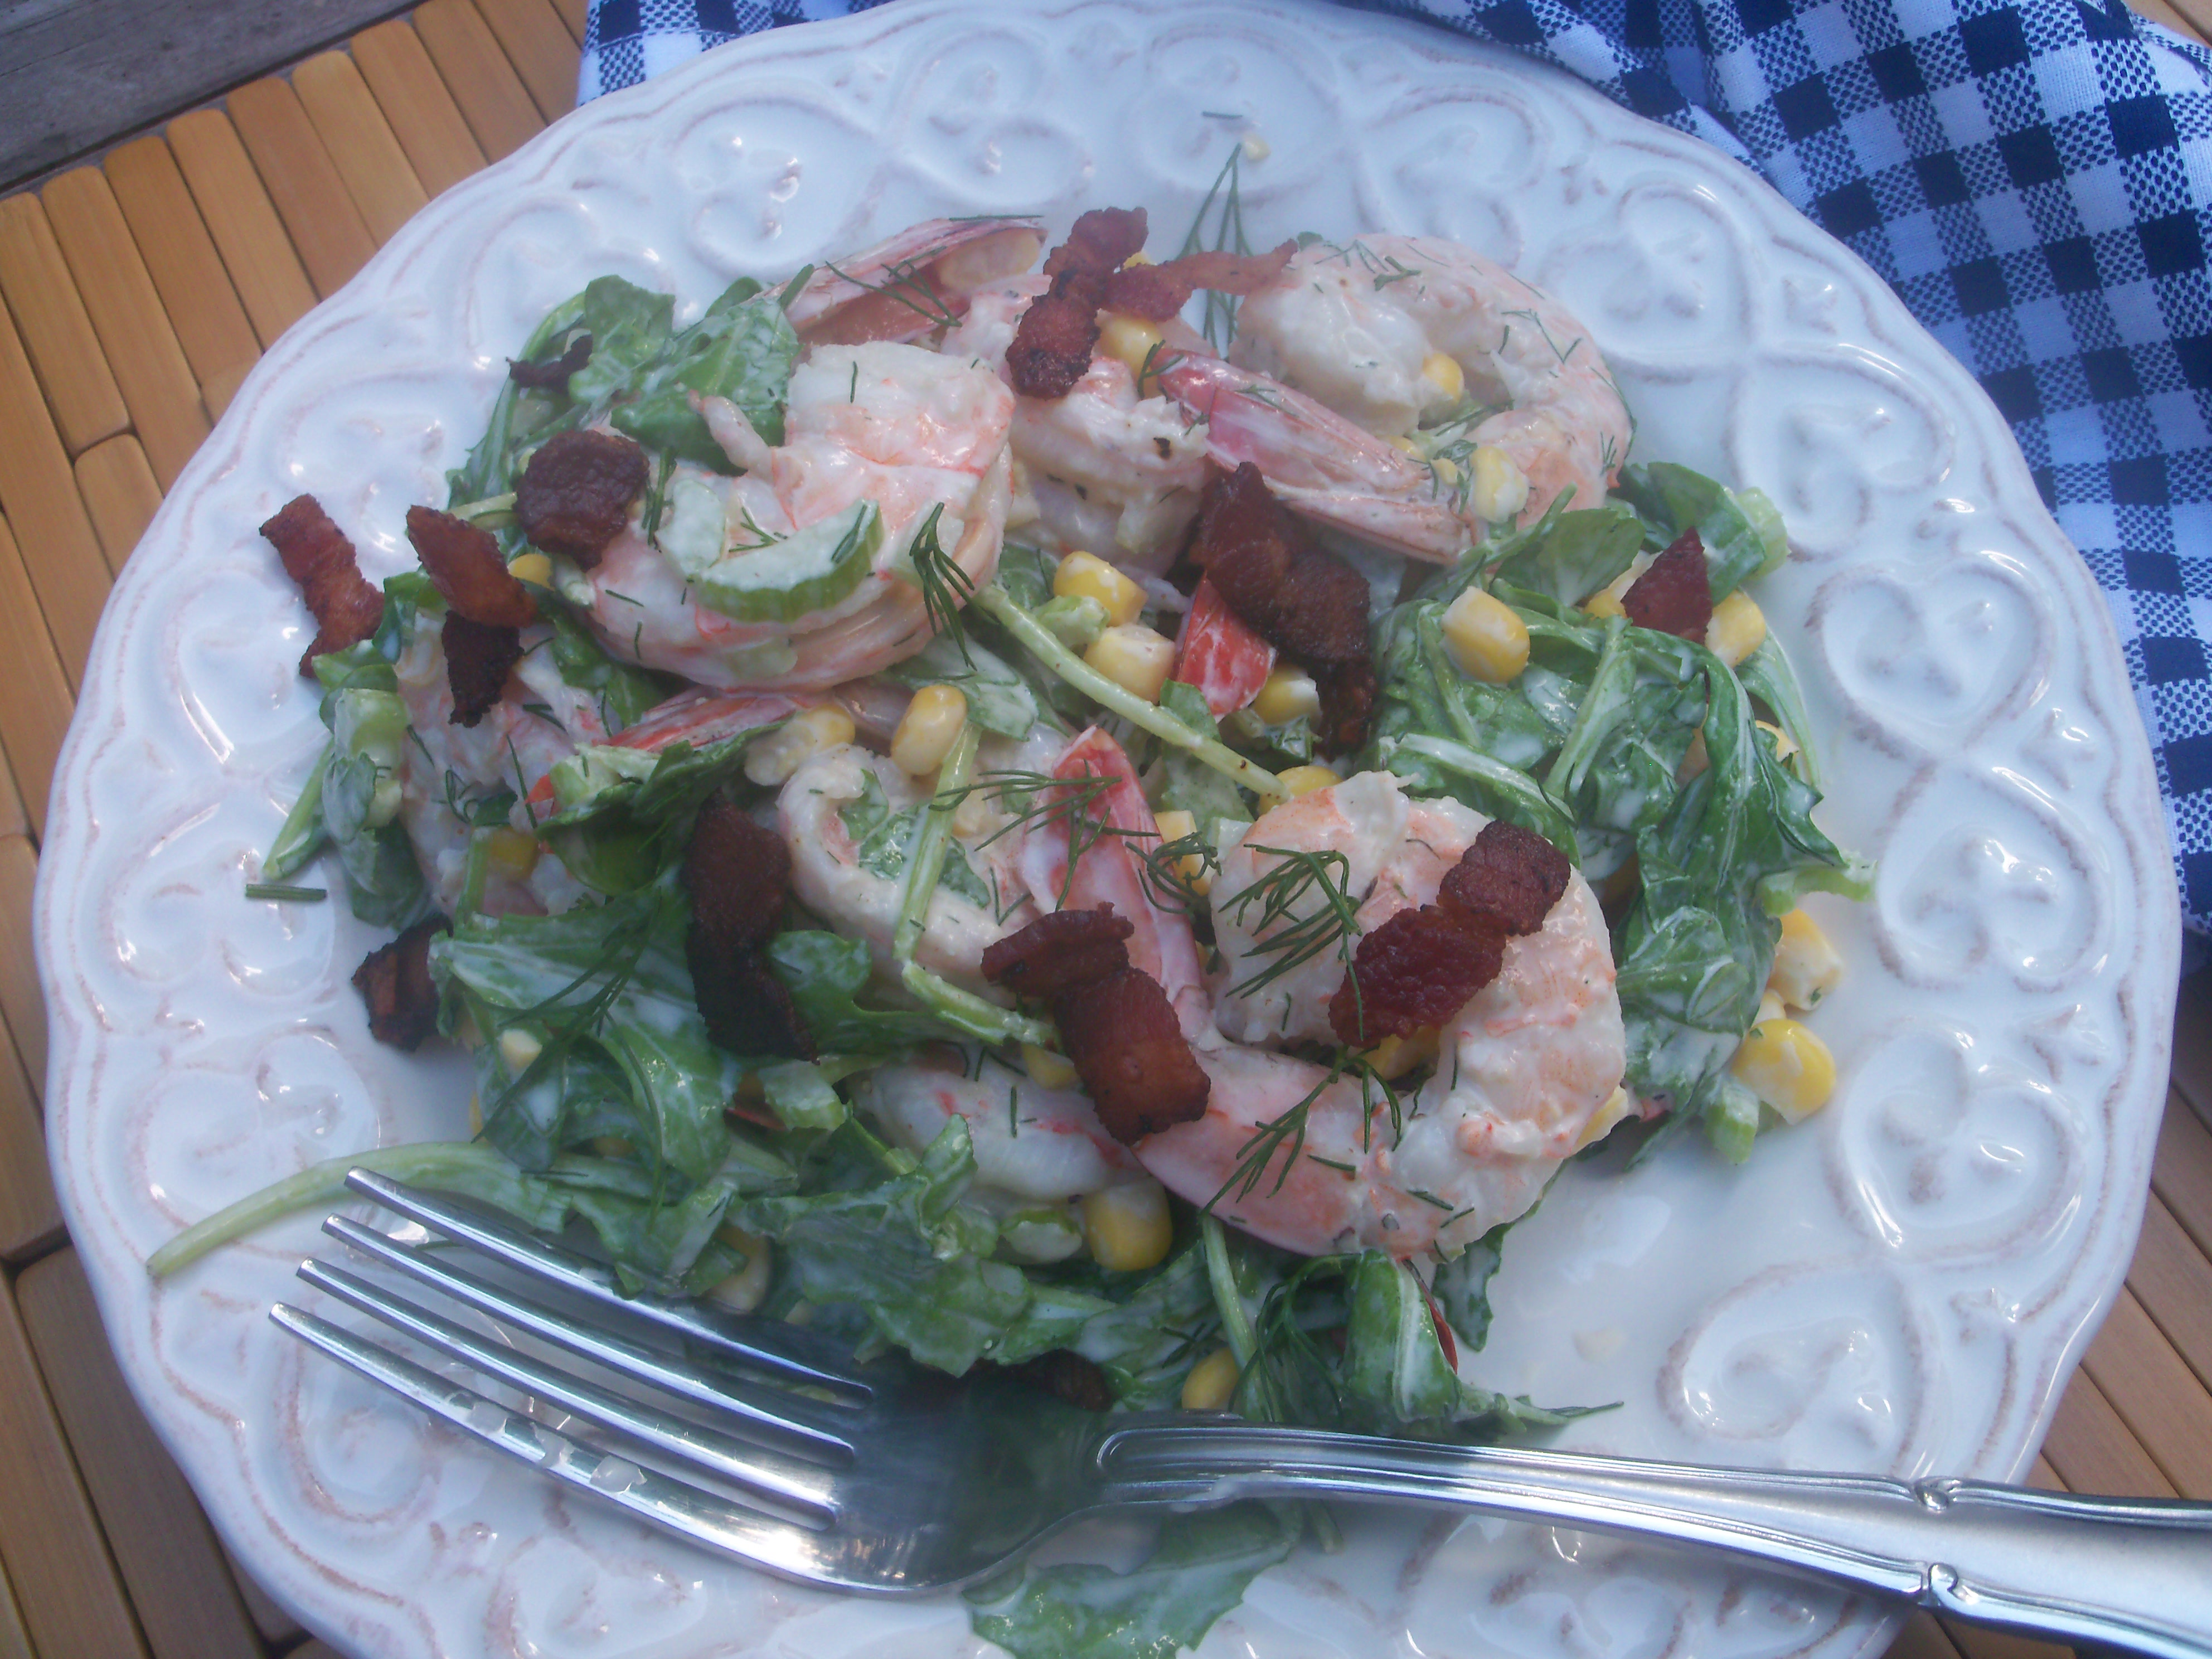 Shrimp and Corn Salad with Creamy Dill Dressing